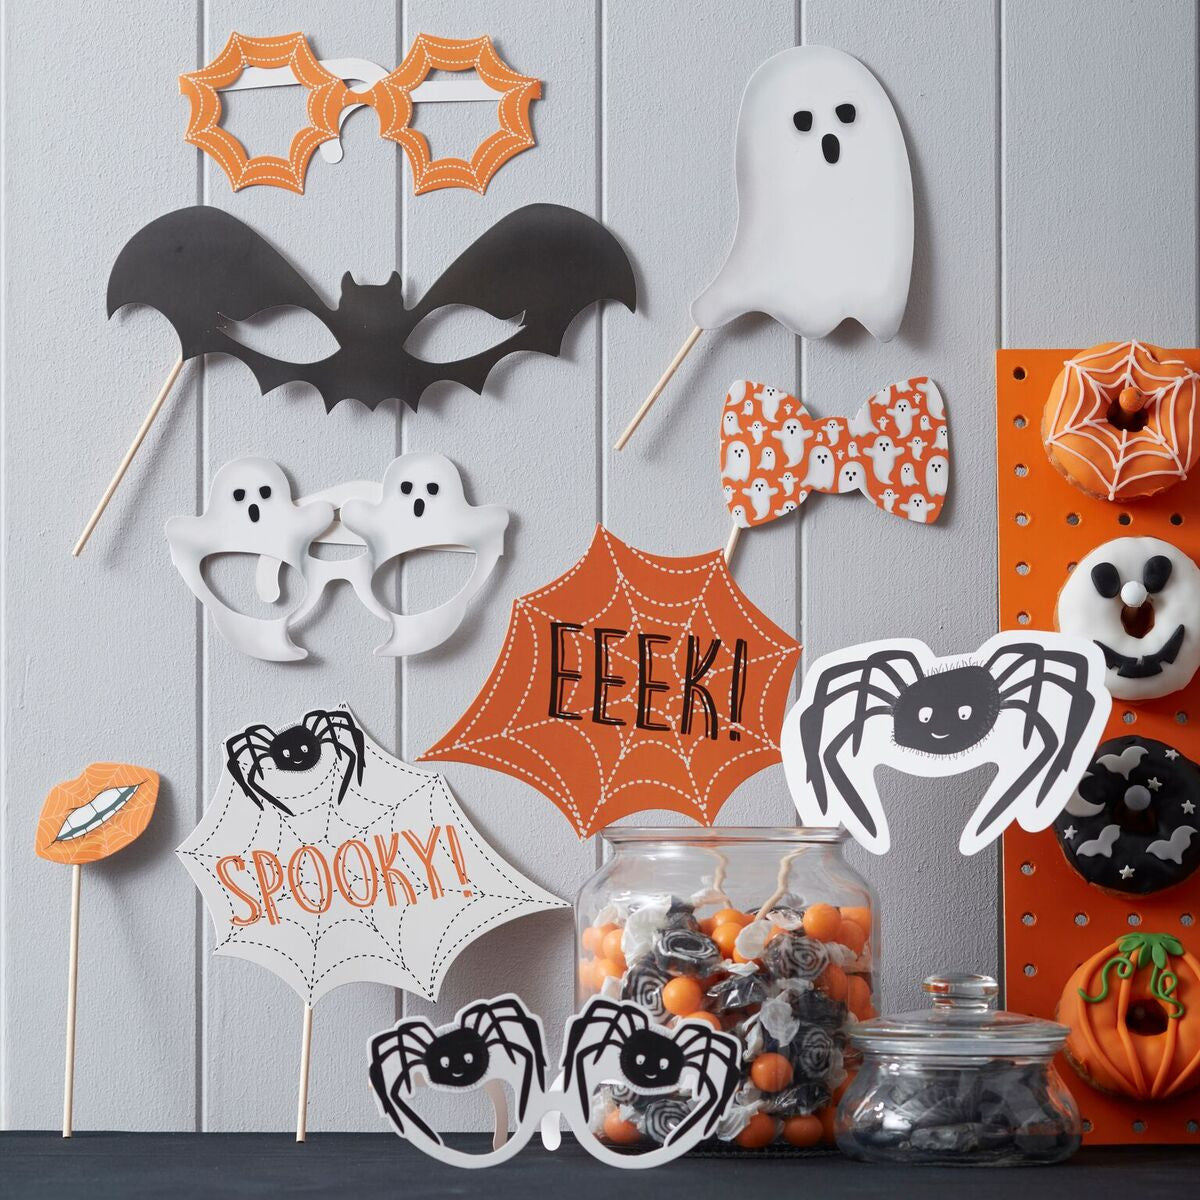 Spooky Halloween Photo Booth Props - The Sweet Hostess